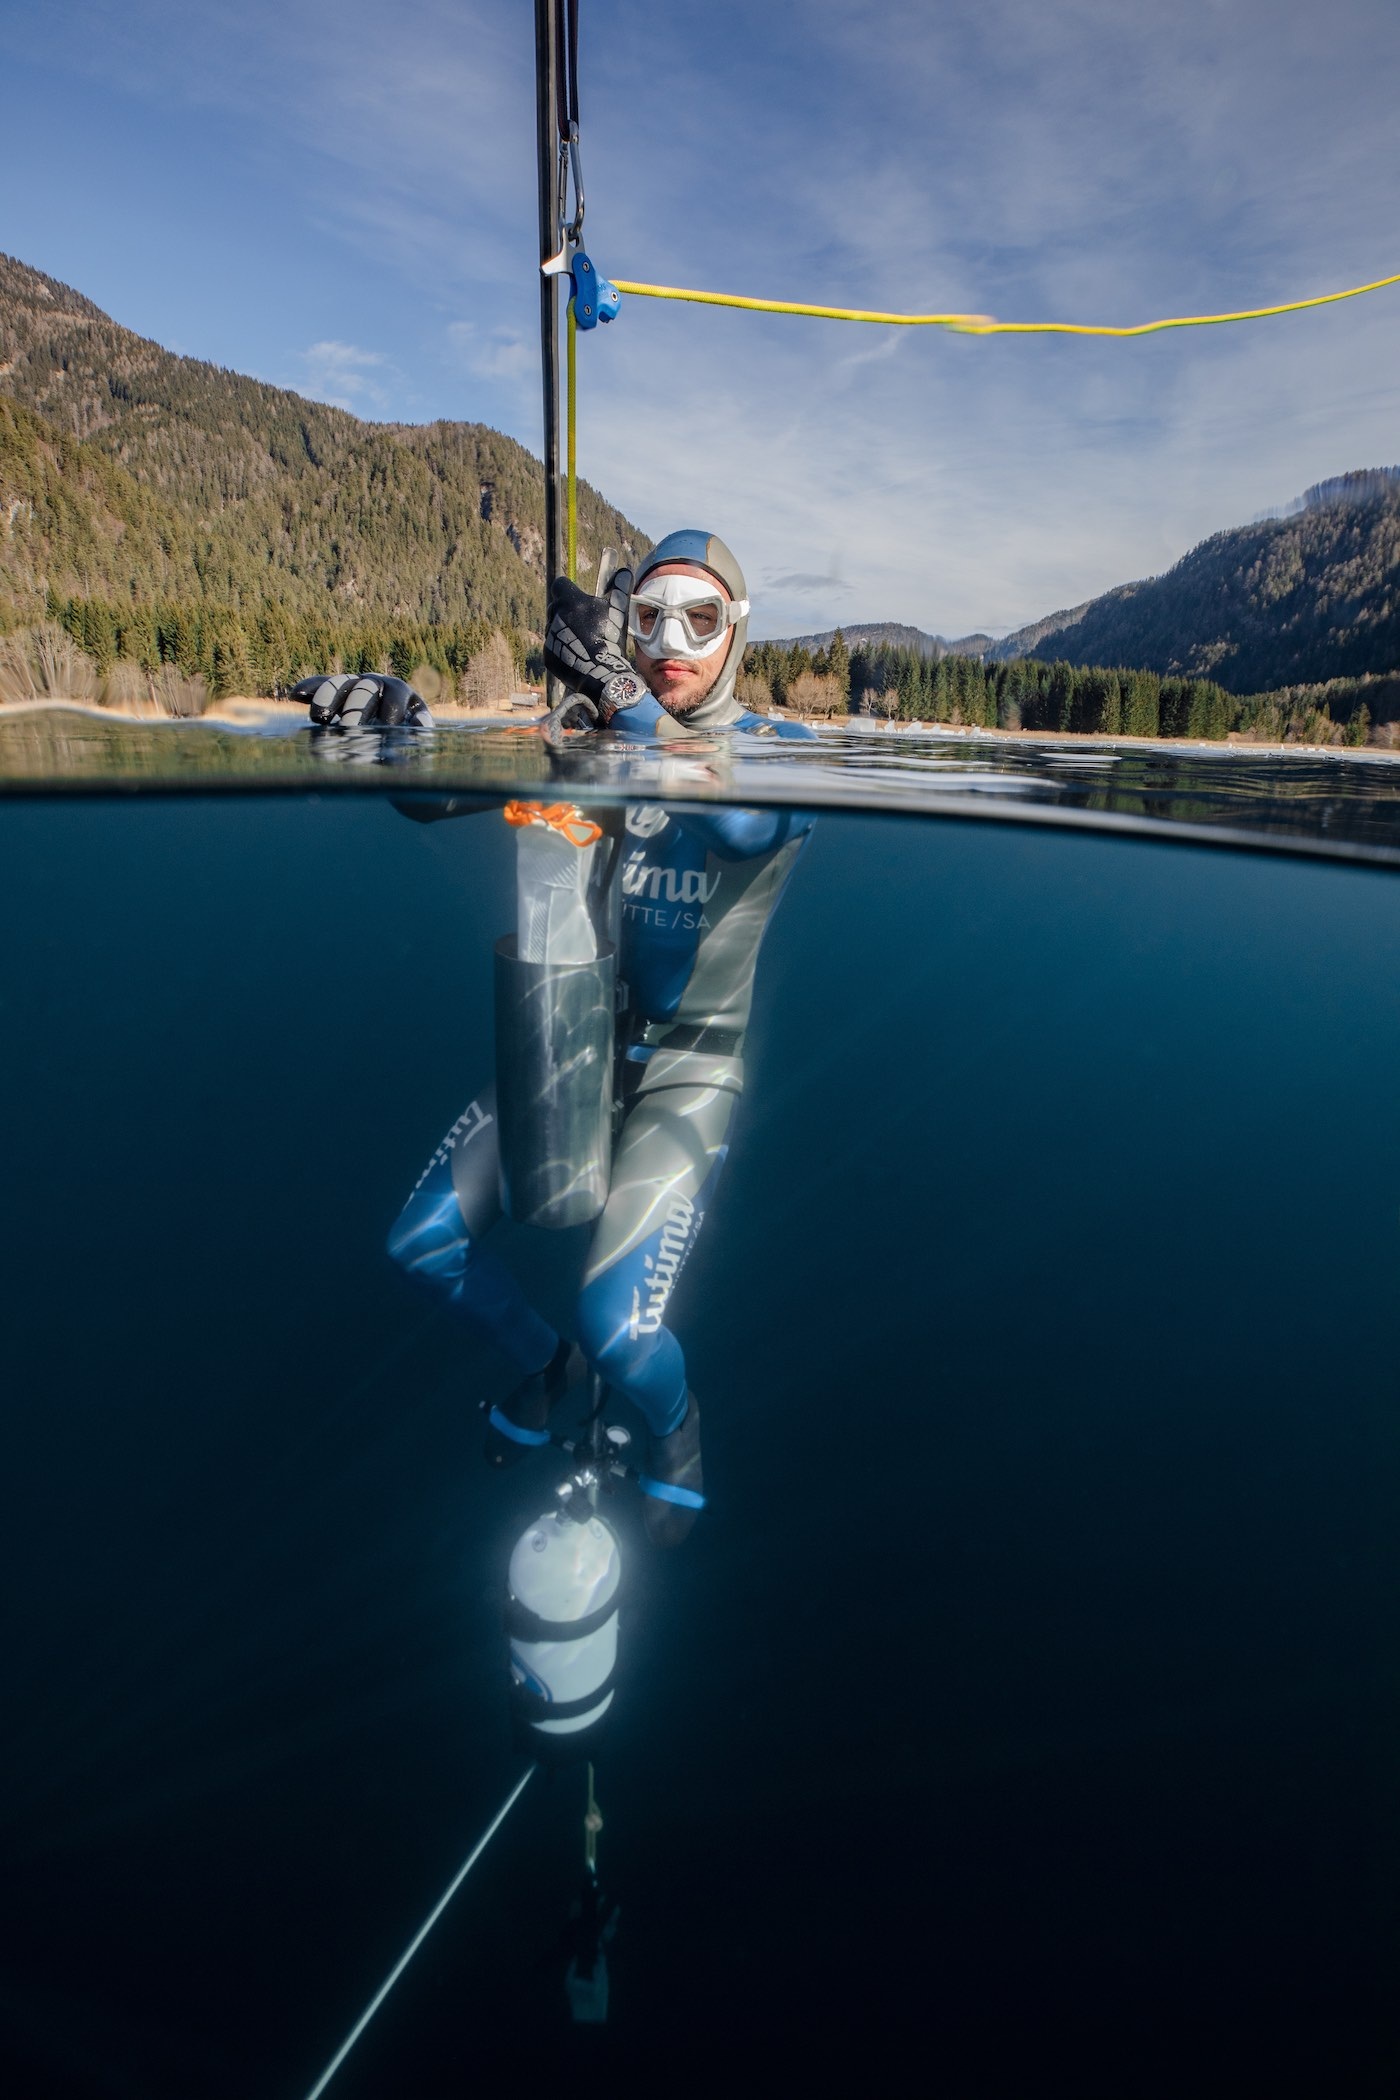 Tutima Watches - Tolga Taskin Freedive World Record